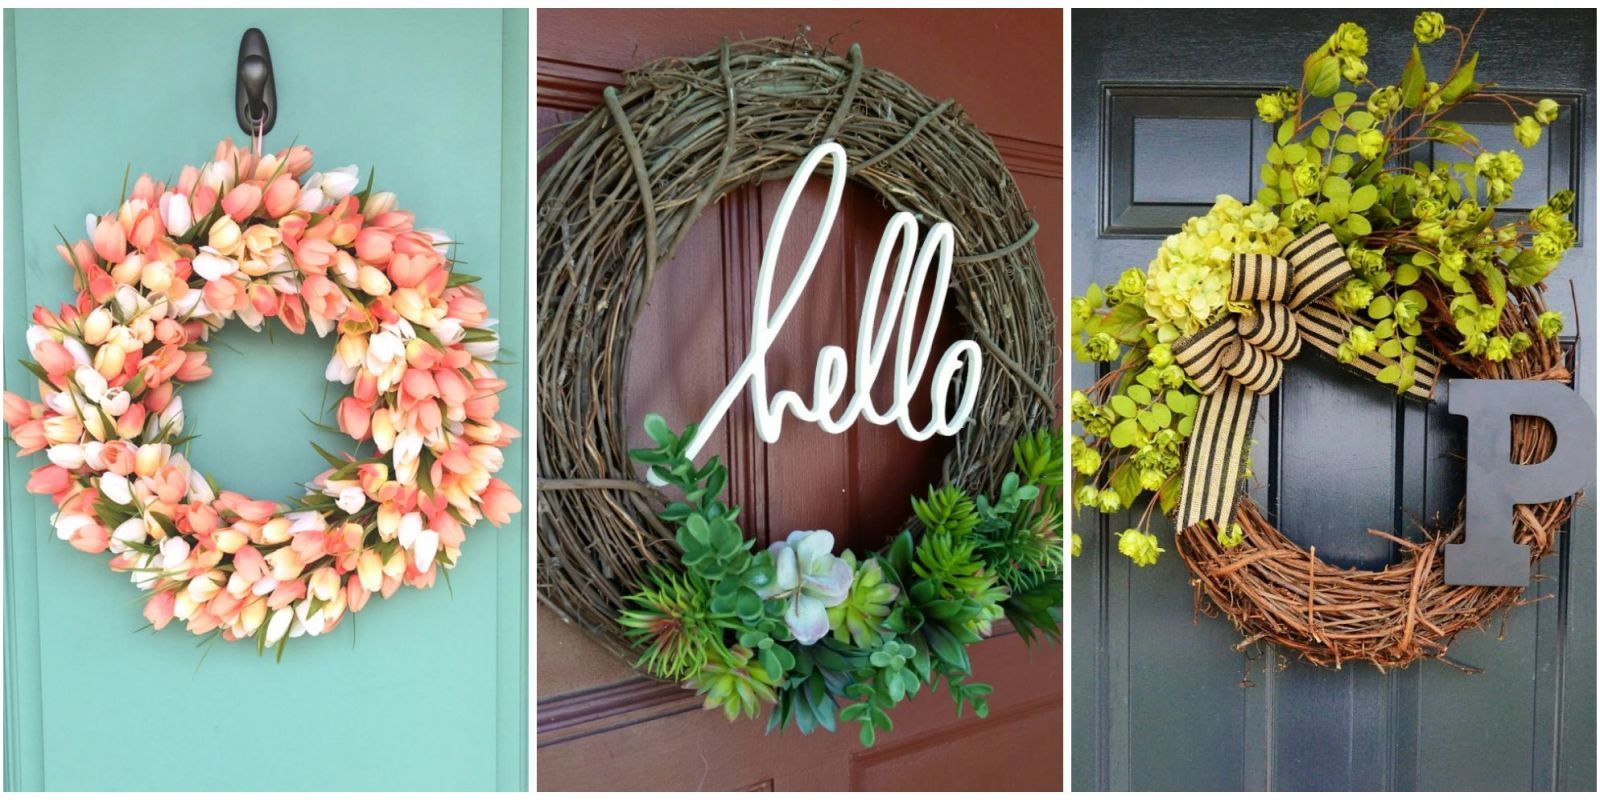 Use Your Free Time This Summer To Make A Sweet DIY Wreath For Your Front  Door.